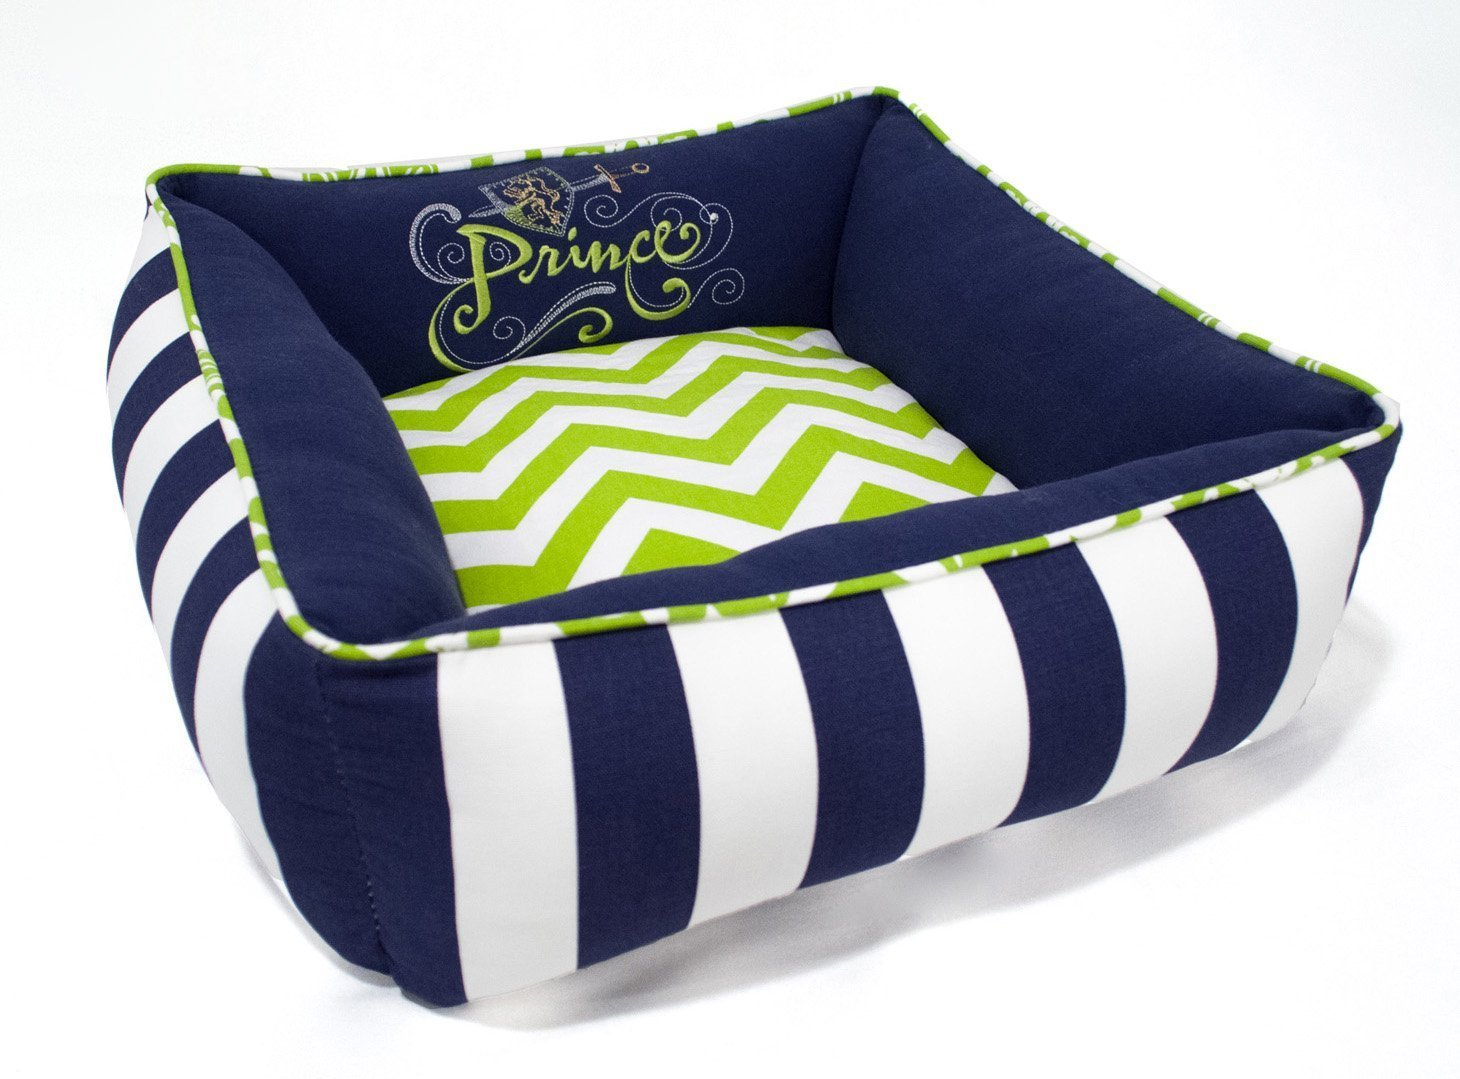 X-Small Prince Dog Cat Pet Bed - Washable Reversible